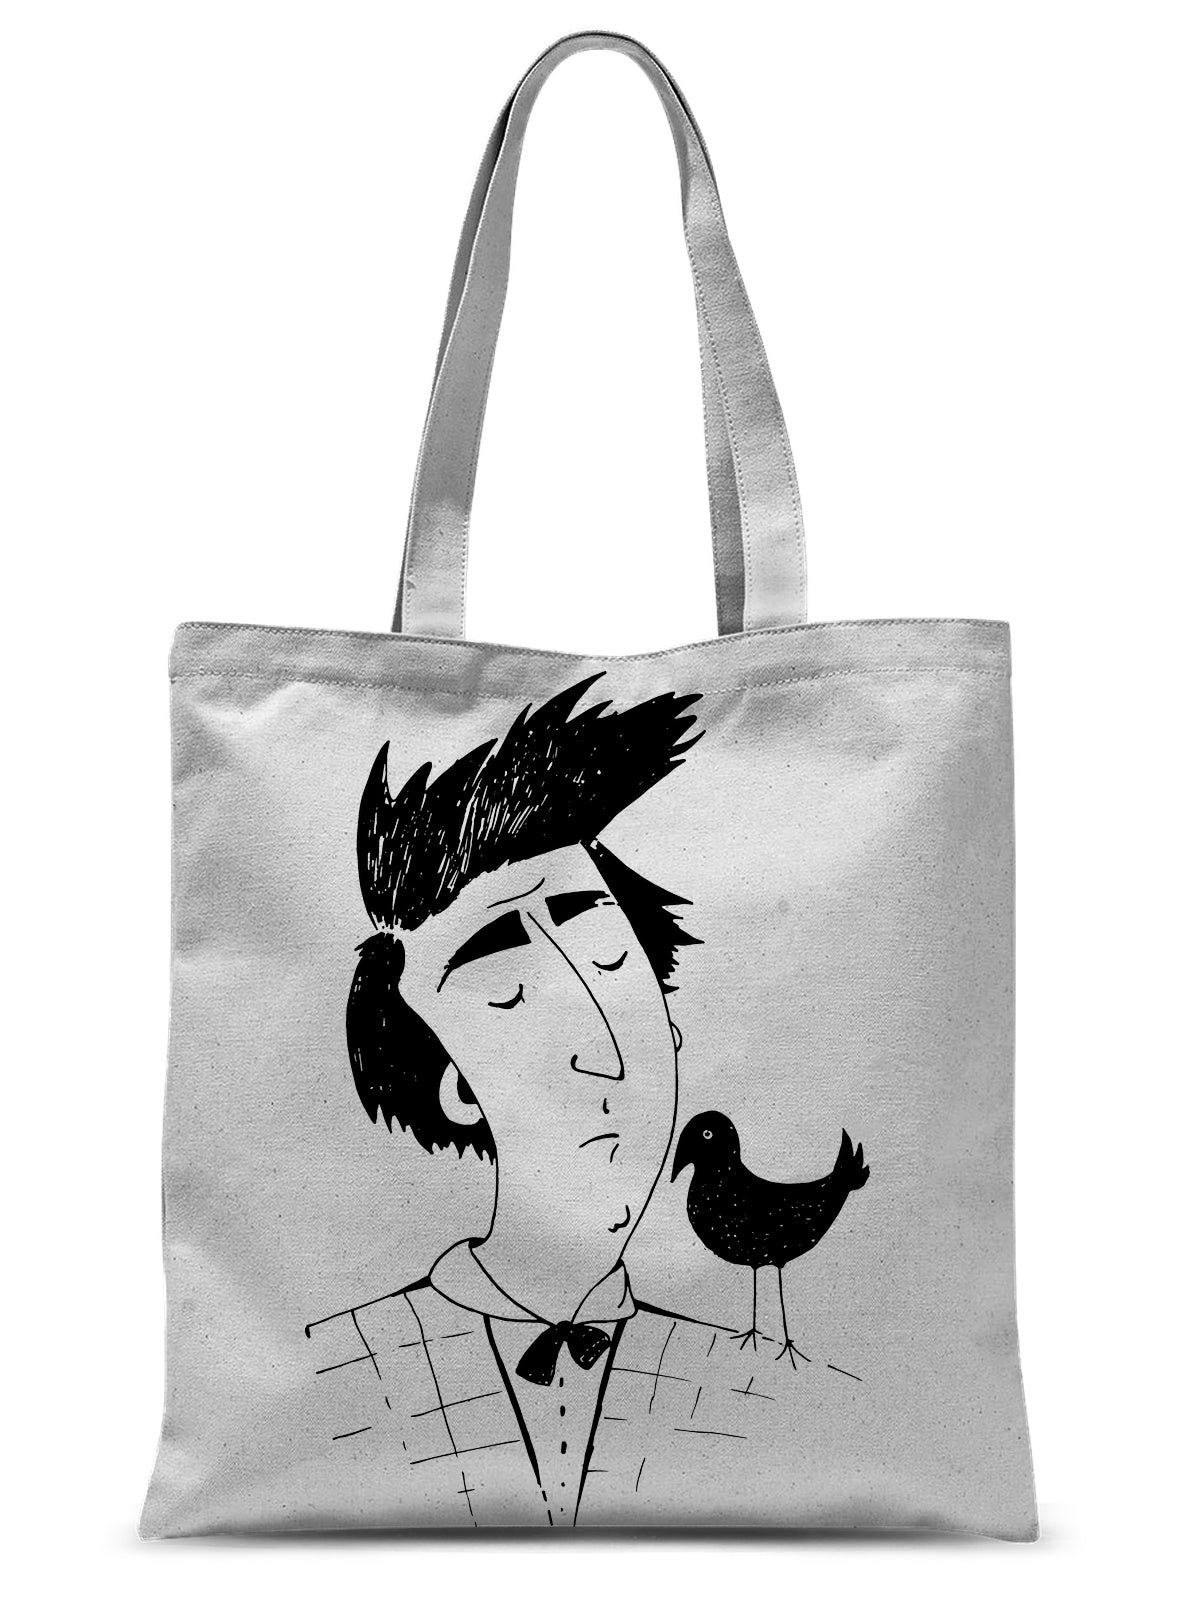 The Muse Sublimation Tote Bag